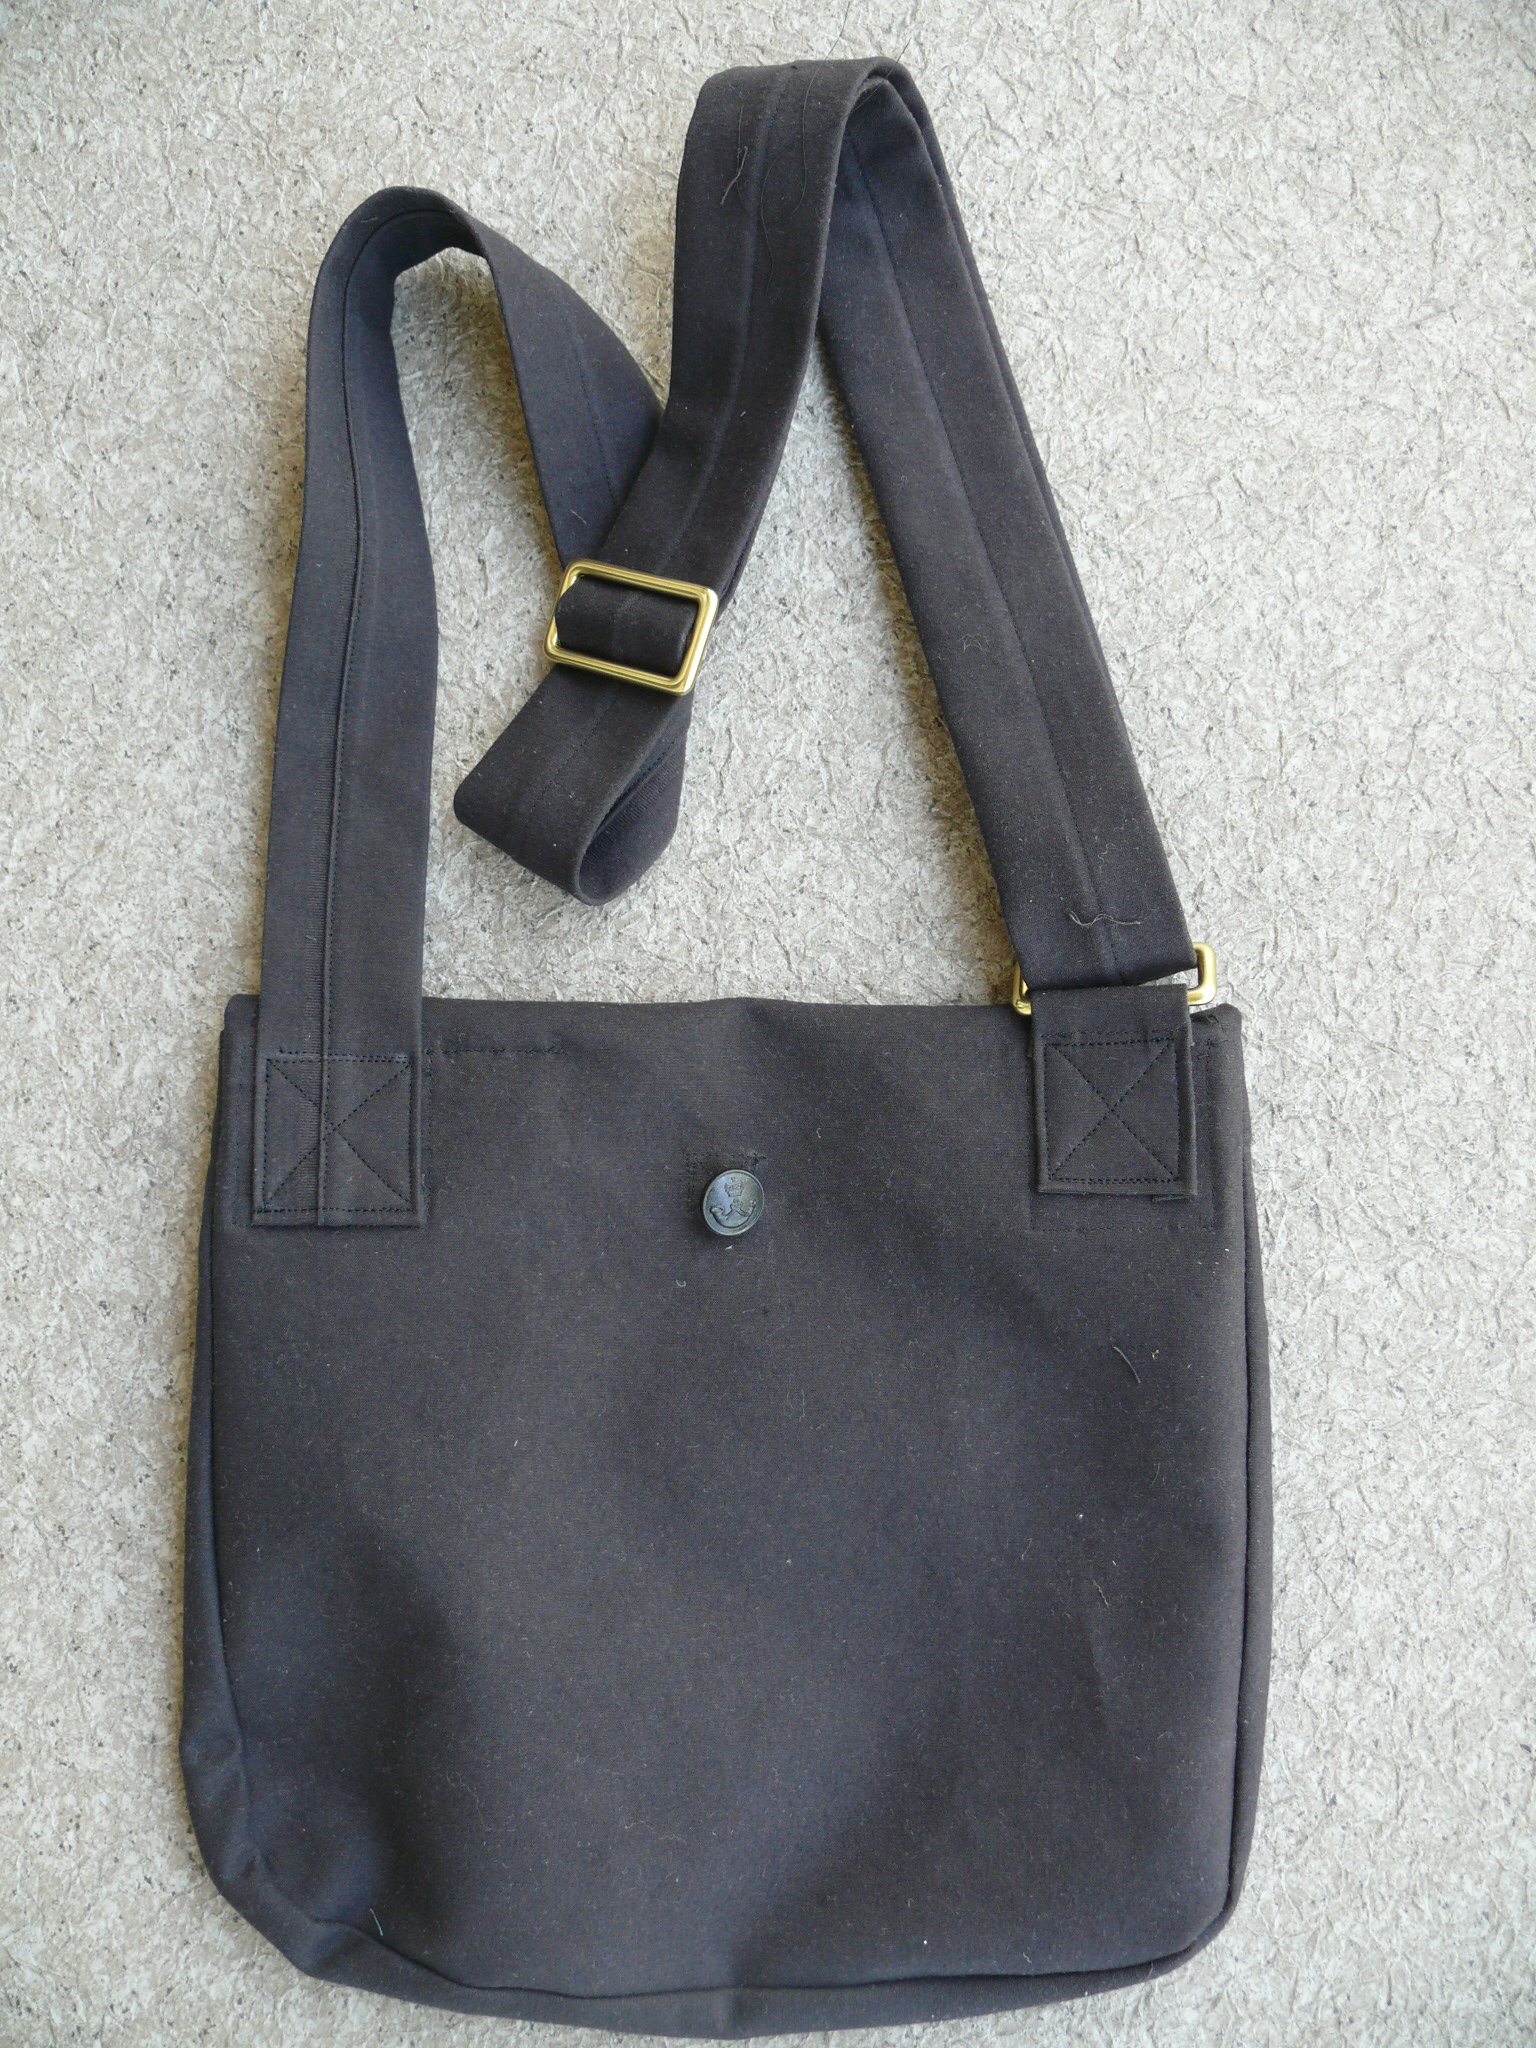 Back view.......The button on this side is used when the bag is empty and rolled up to conserve space.